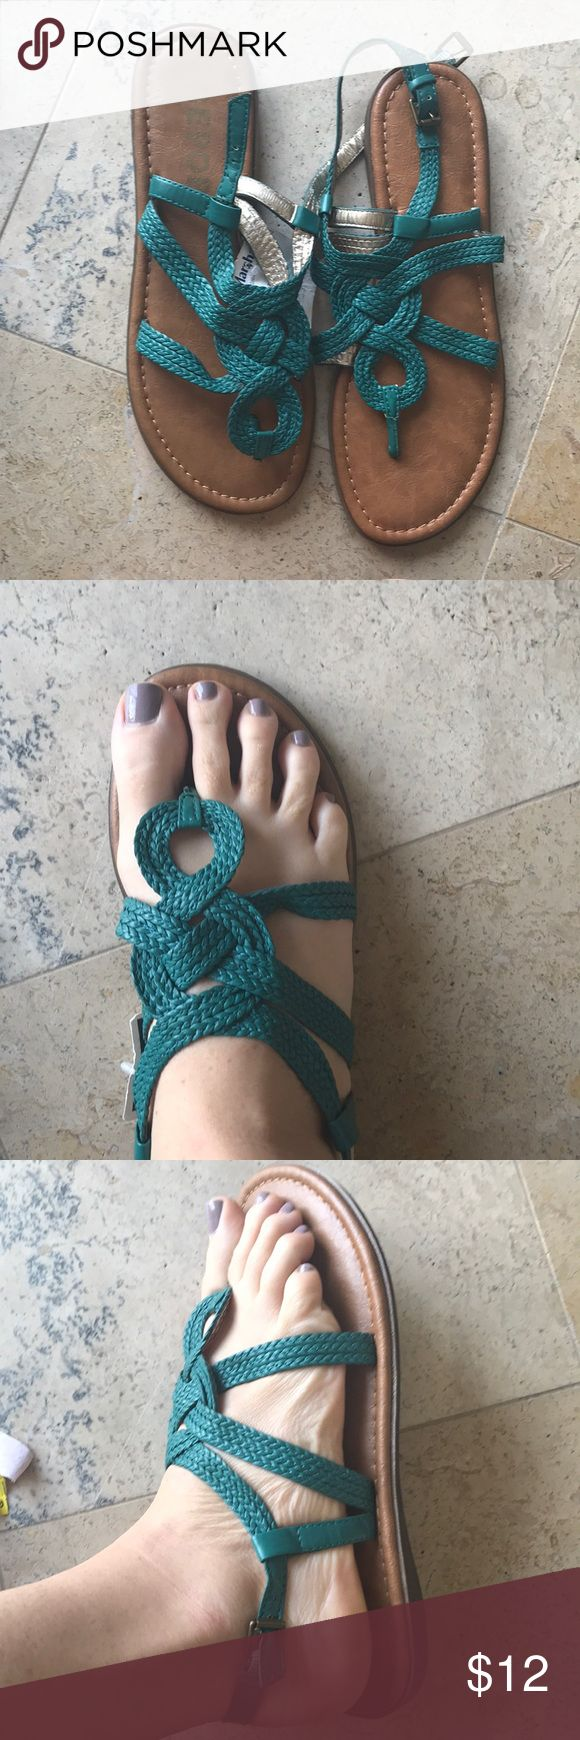 Teal sandals Teal braided sandals Report Shoes Sandals